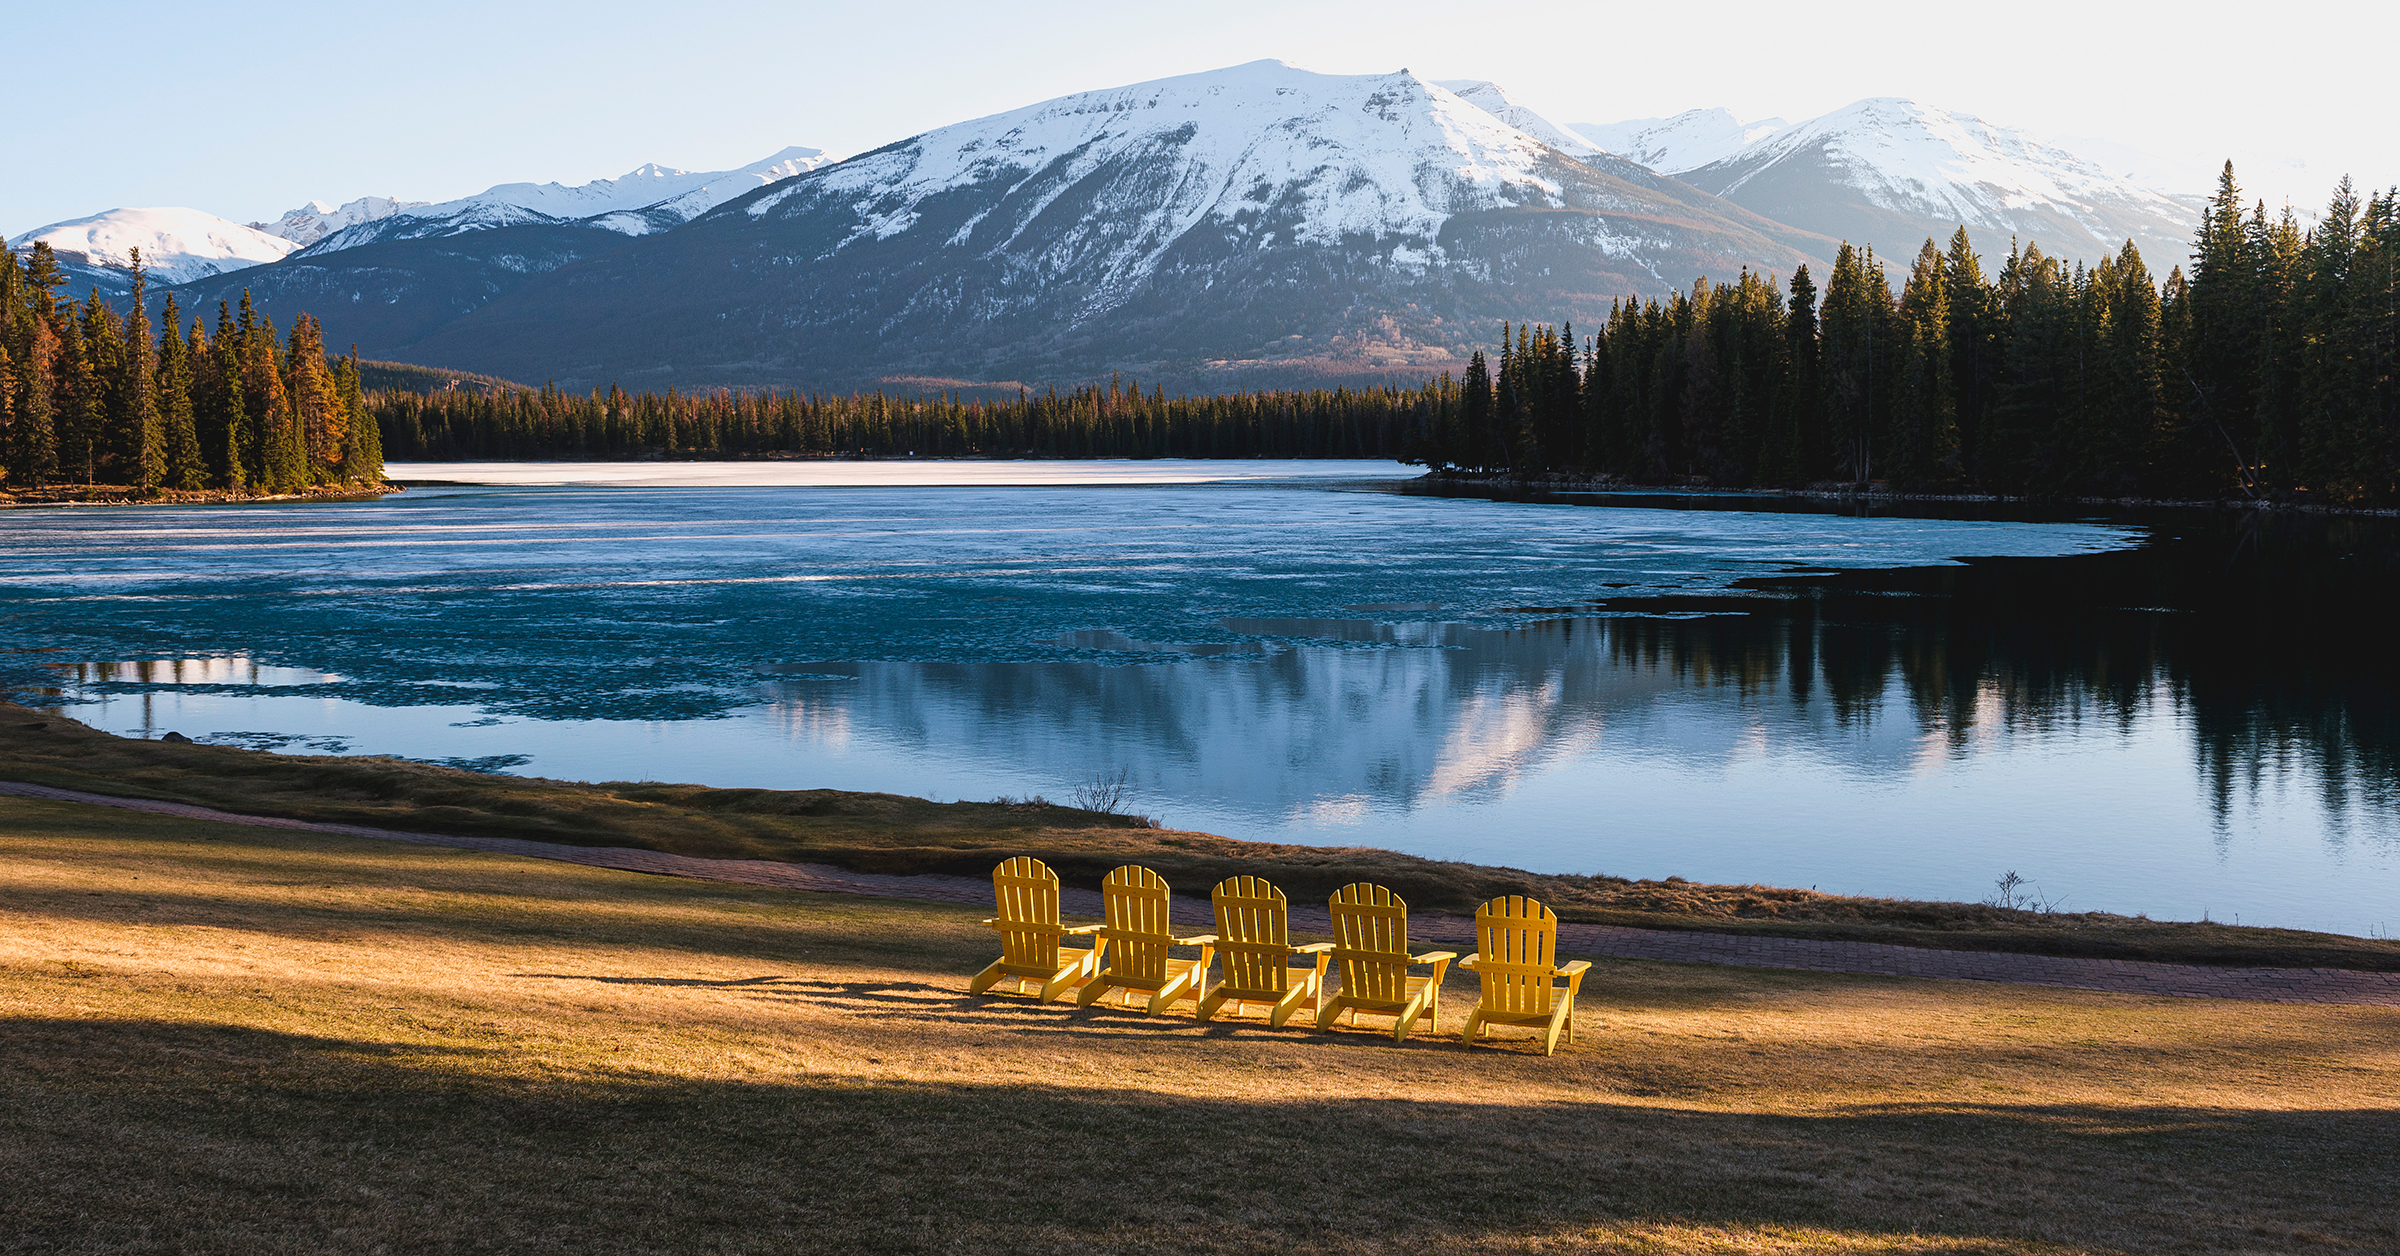 Yellow Adirondack charis sit on the sunny shores of Lac Beauvert as the winter ice melts.